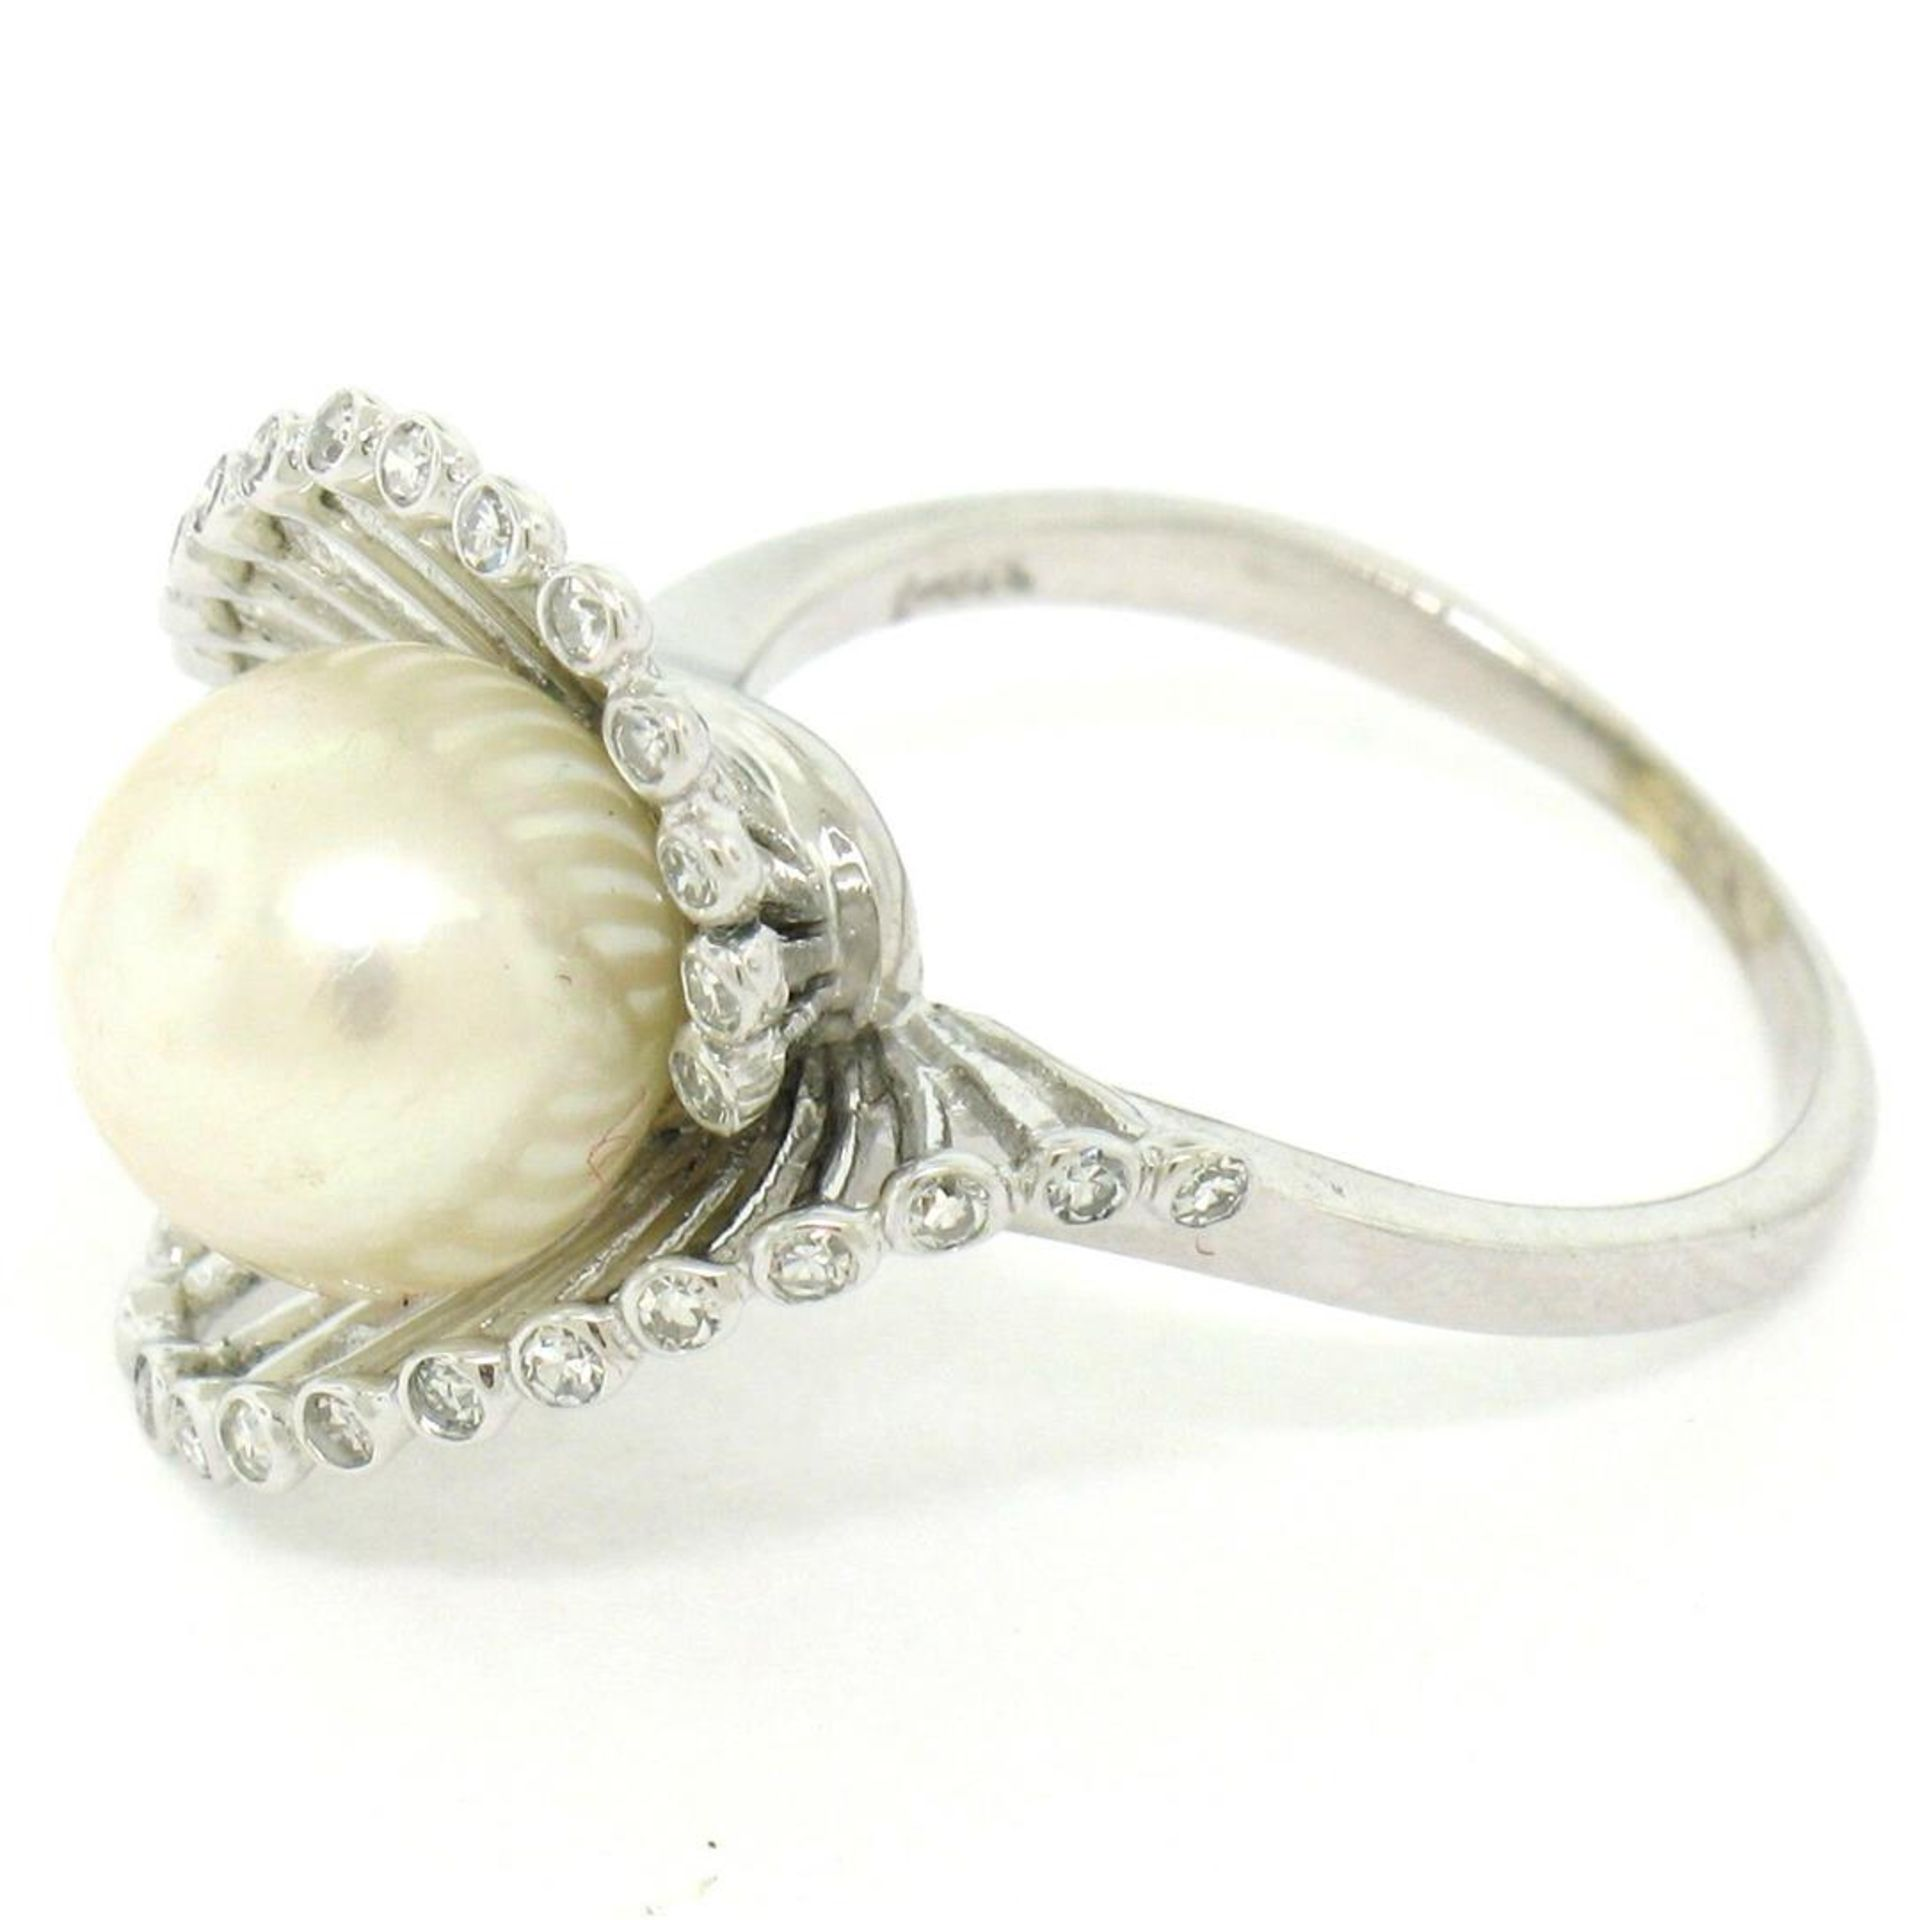 Vintage 14K White Gold 8.5mm Pearl Bezel Diamond 2 Wave Bypass Cocktail Ring - Image 4 of 8